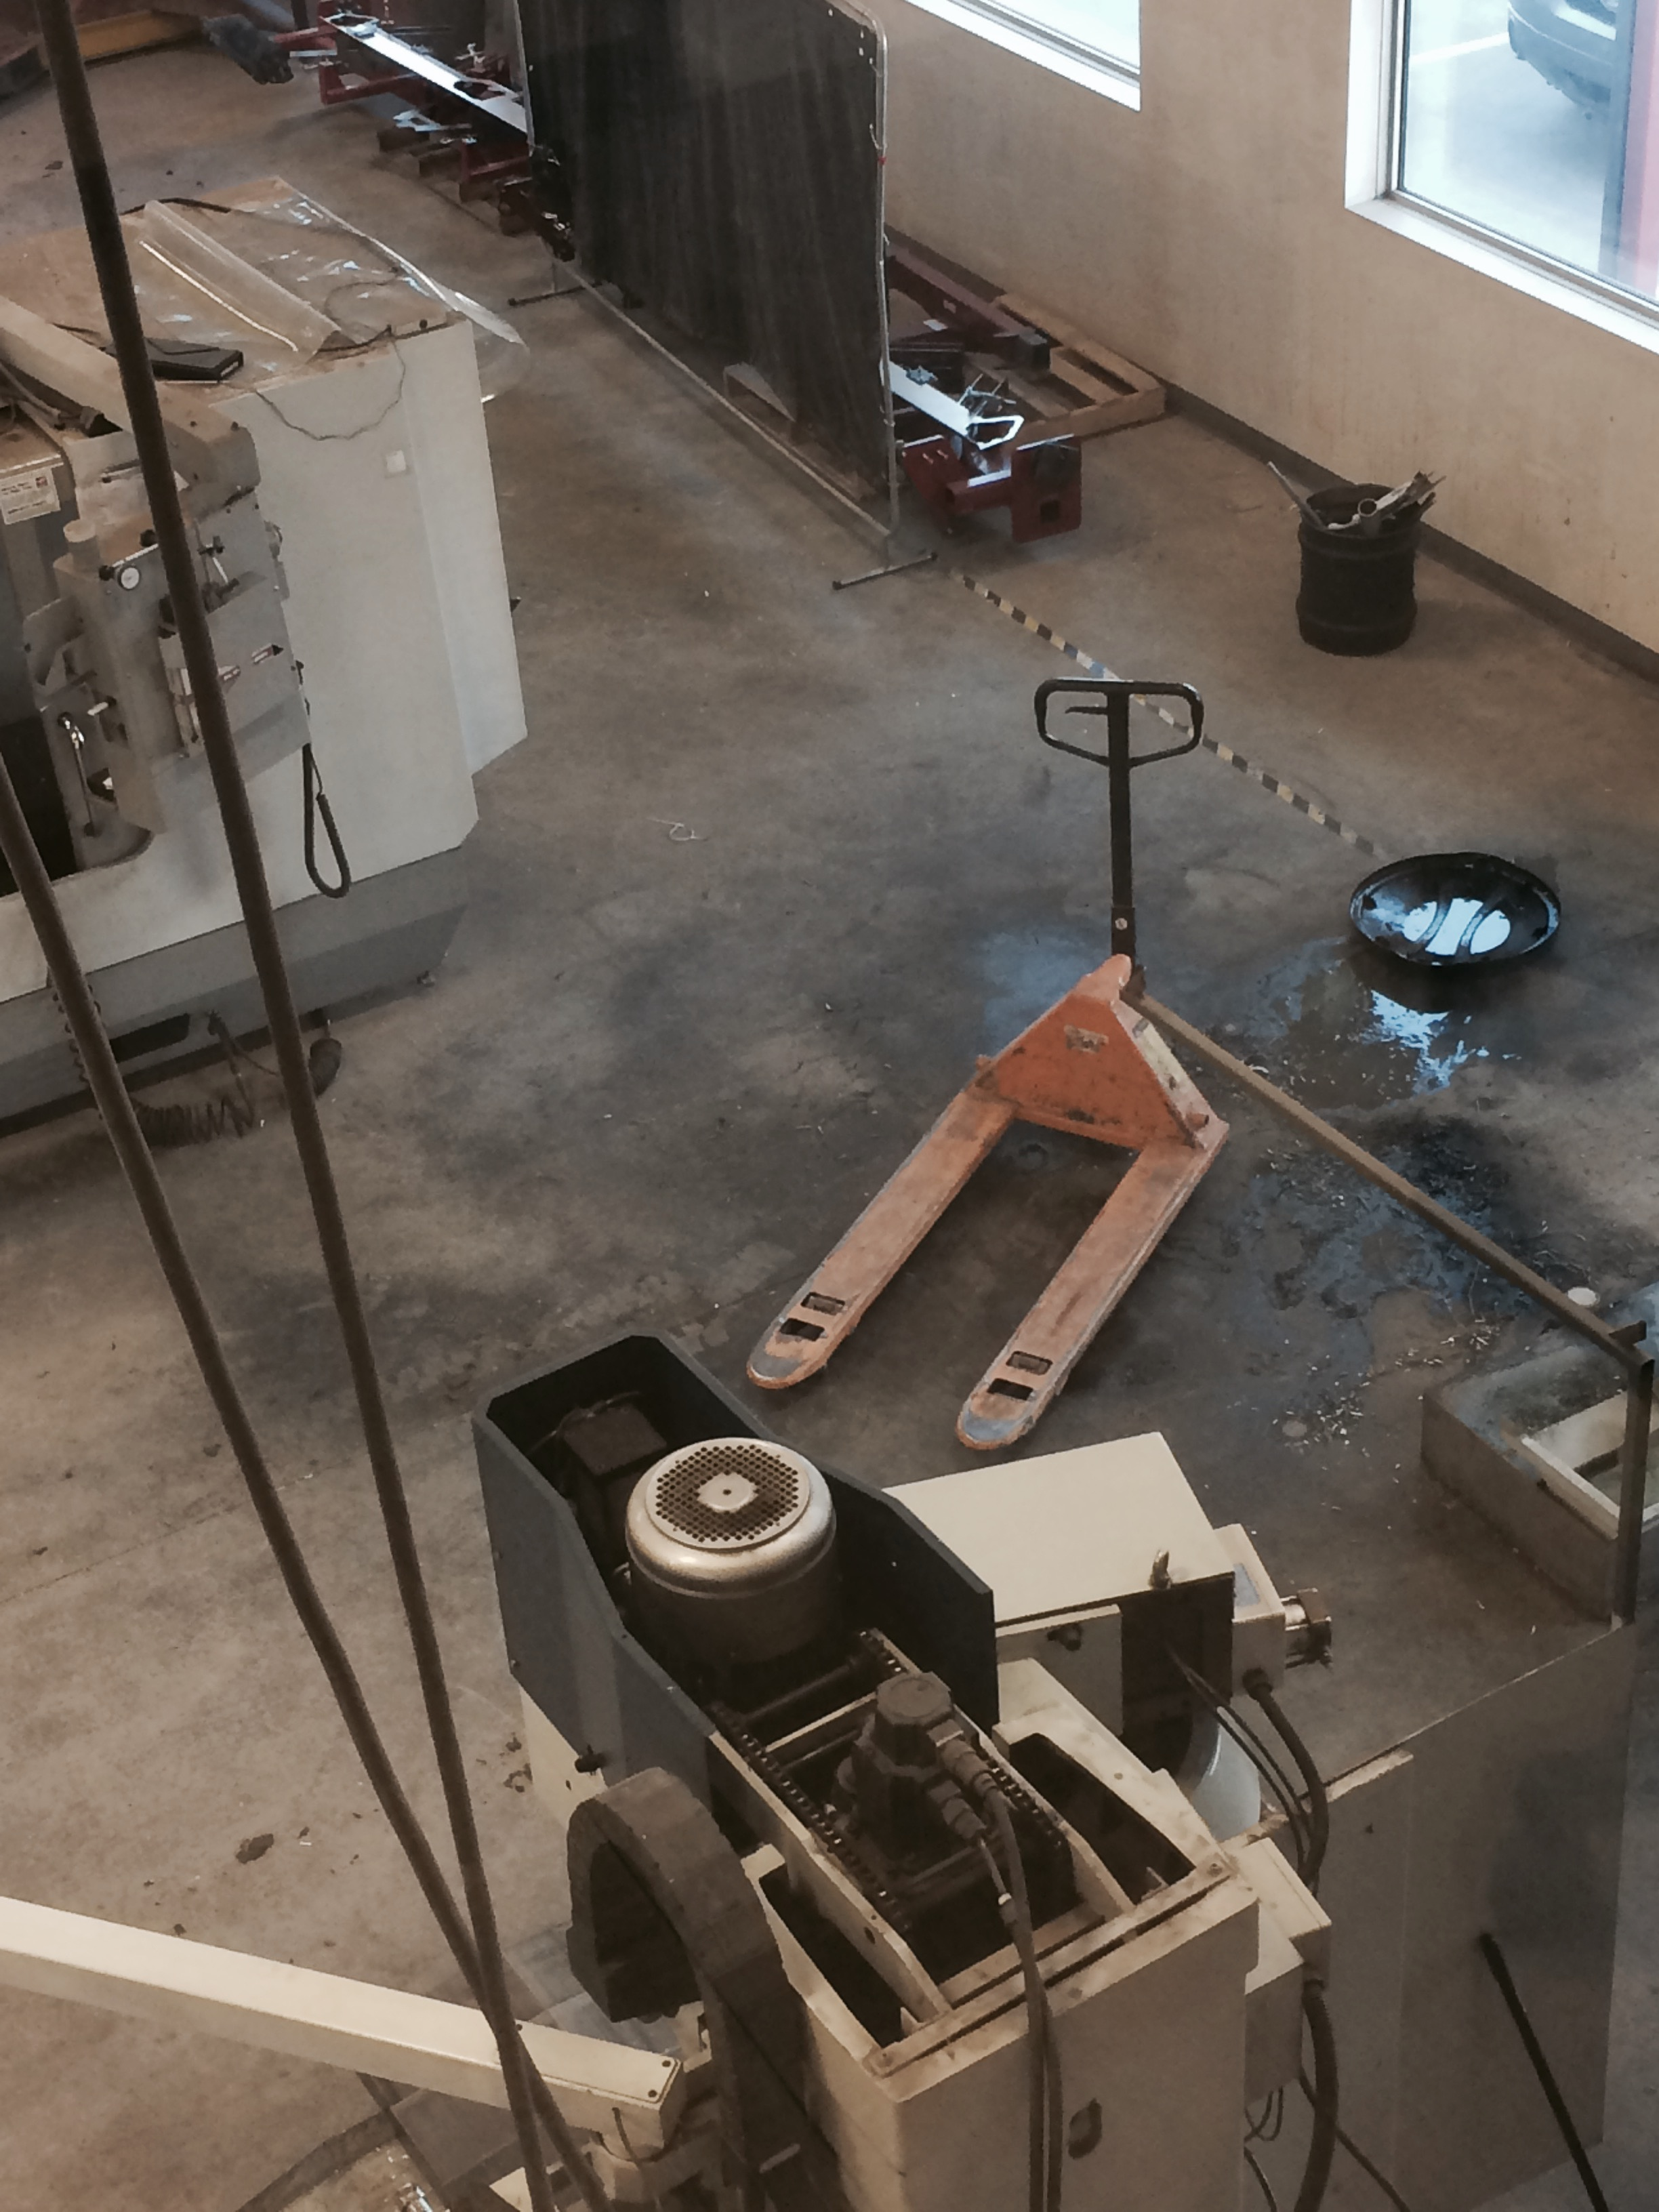 This is an embarrassing picture of the mess under our machining center. After a few years of coolant and oil making it's way to the floor the concrete has becoming so stained it was impossible to clean anymore.